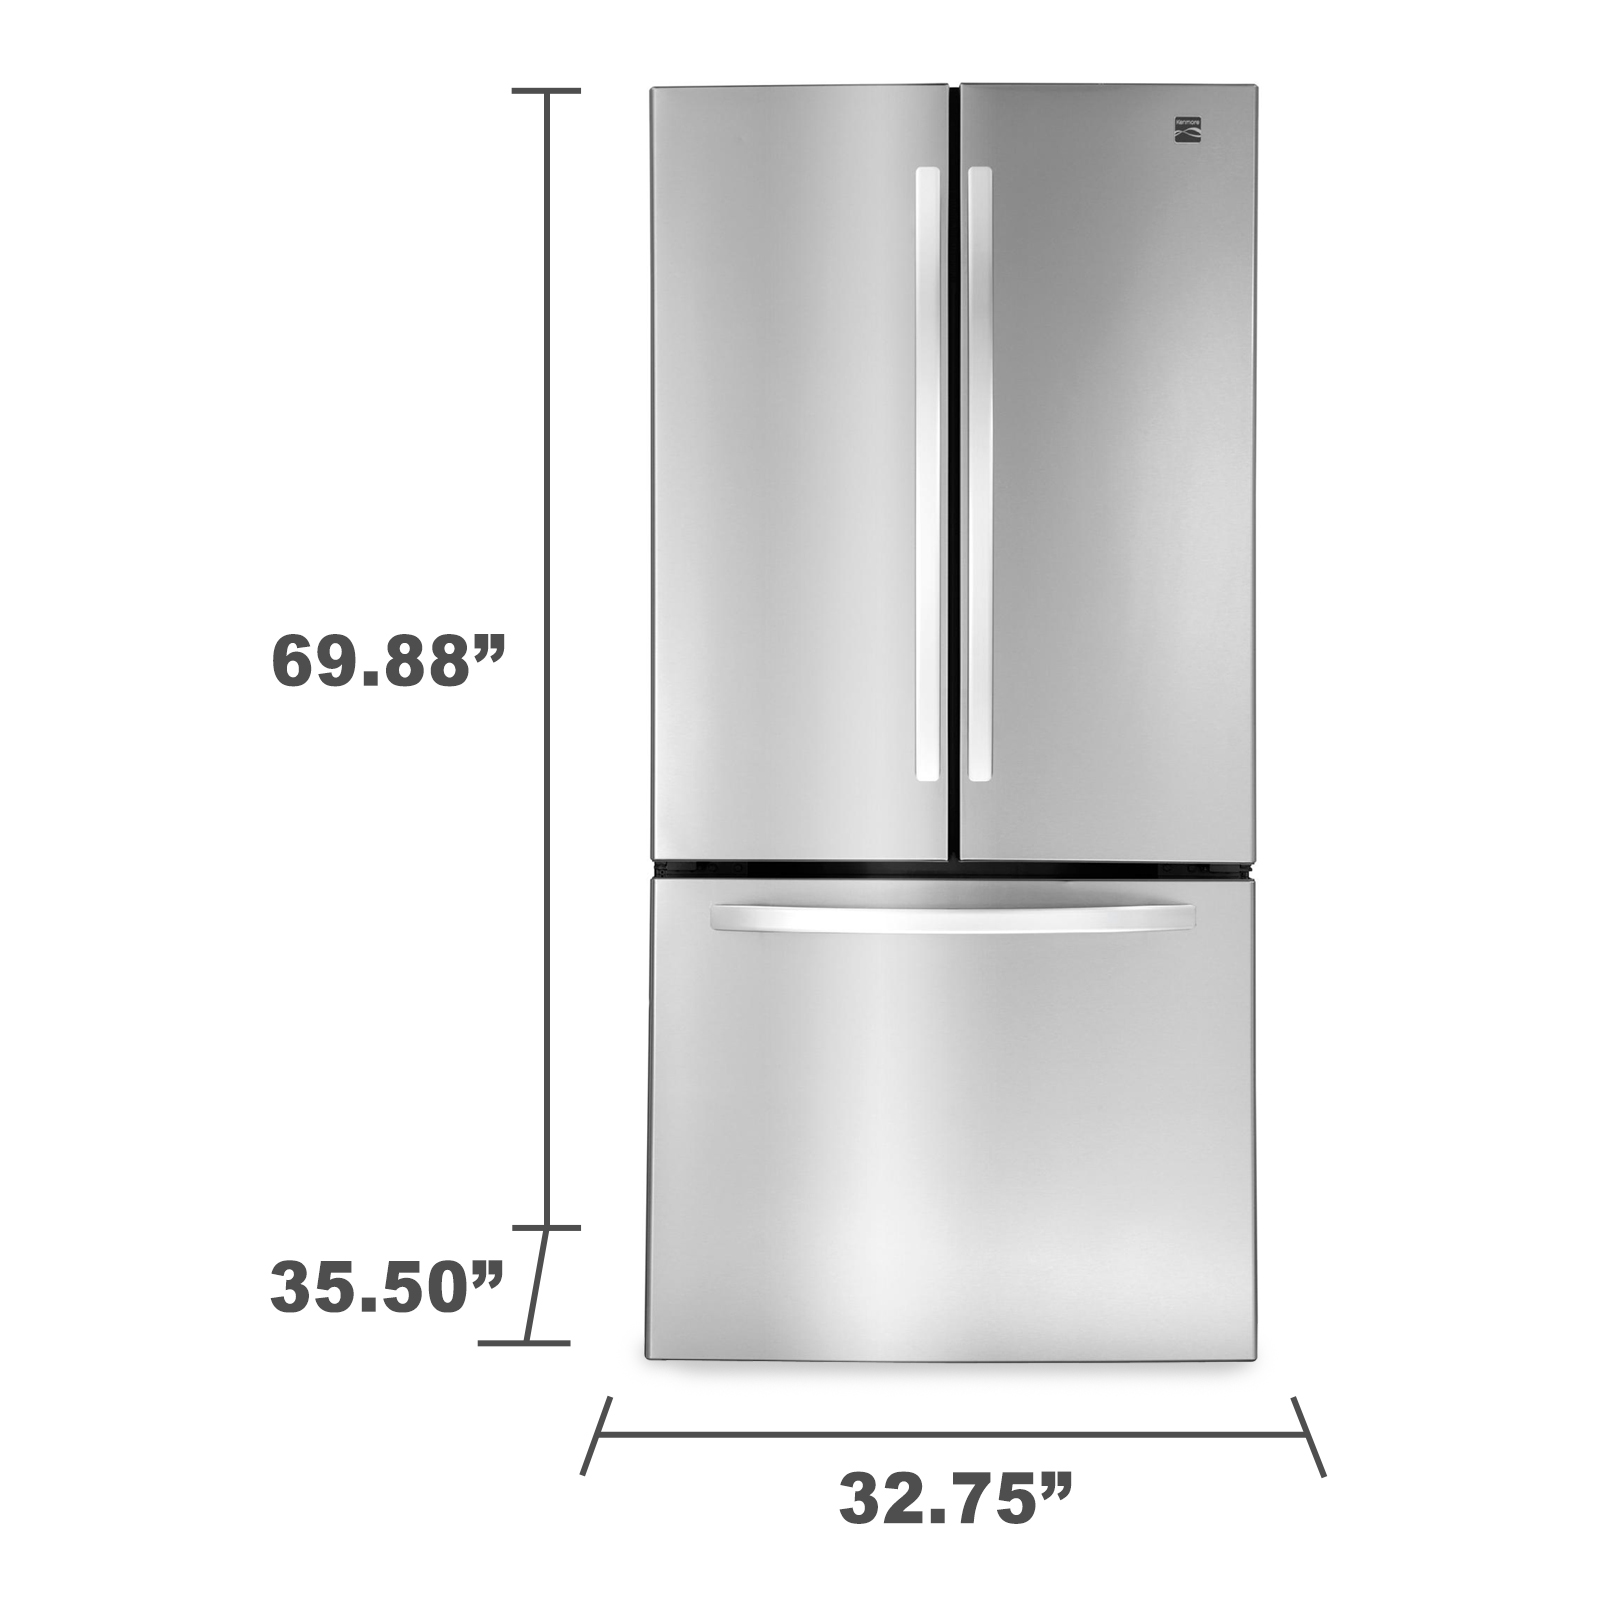 Kenmore 71313 23.9 cu. ft. French Door Bottom-Freezer Refrigerator – Stainless Steel